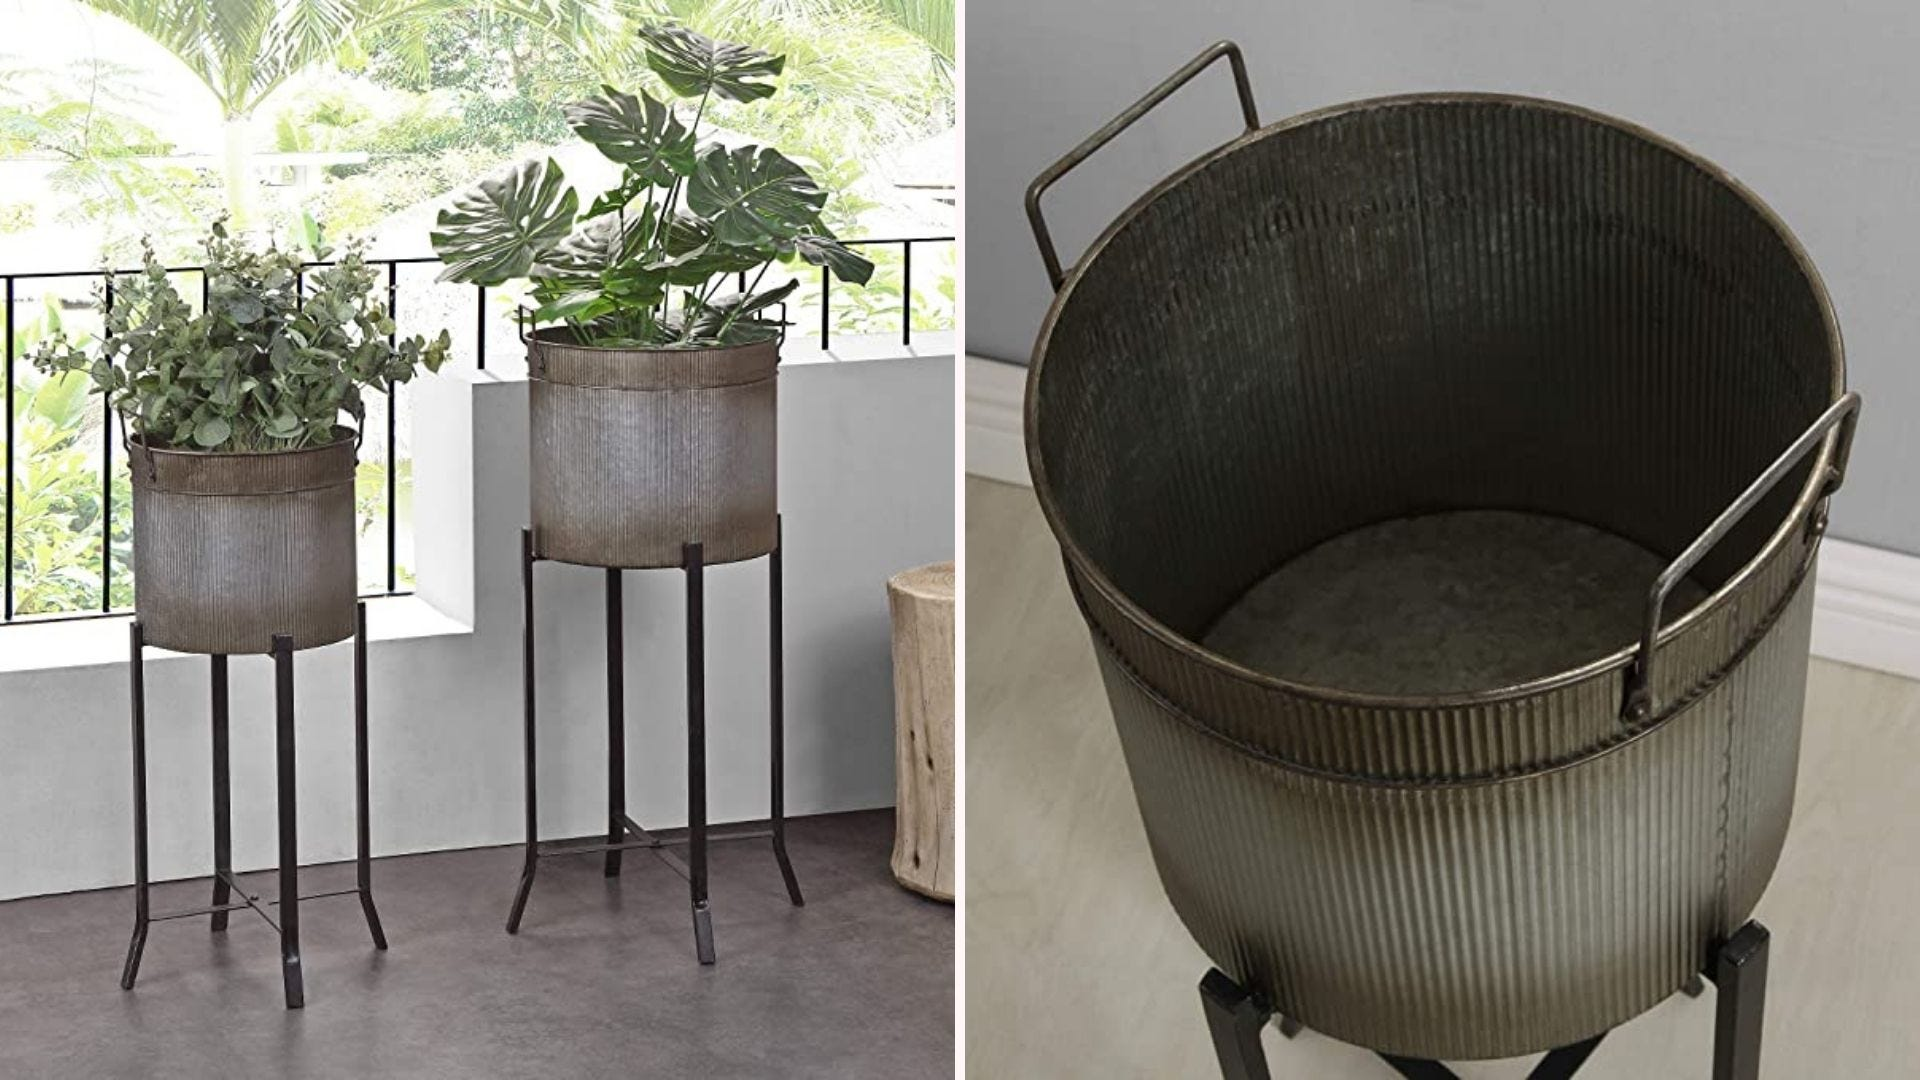 On the left, a pair of metal planters with tall bases, and on the right, a closeup of one of the planters.